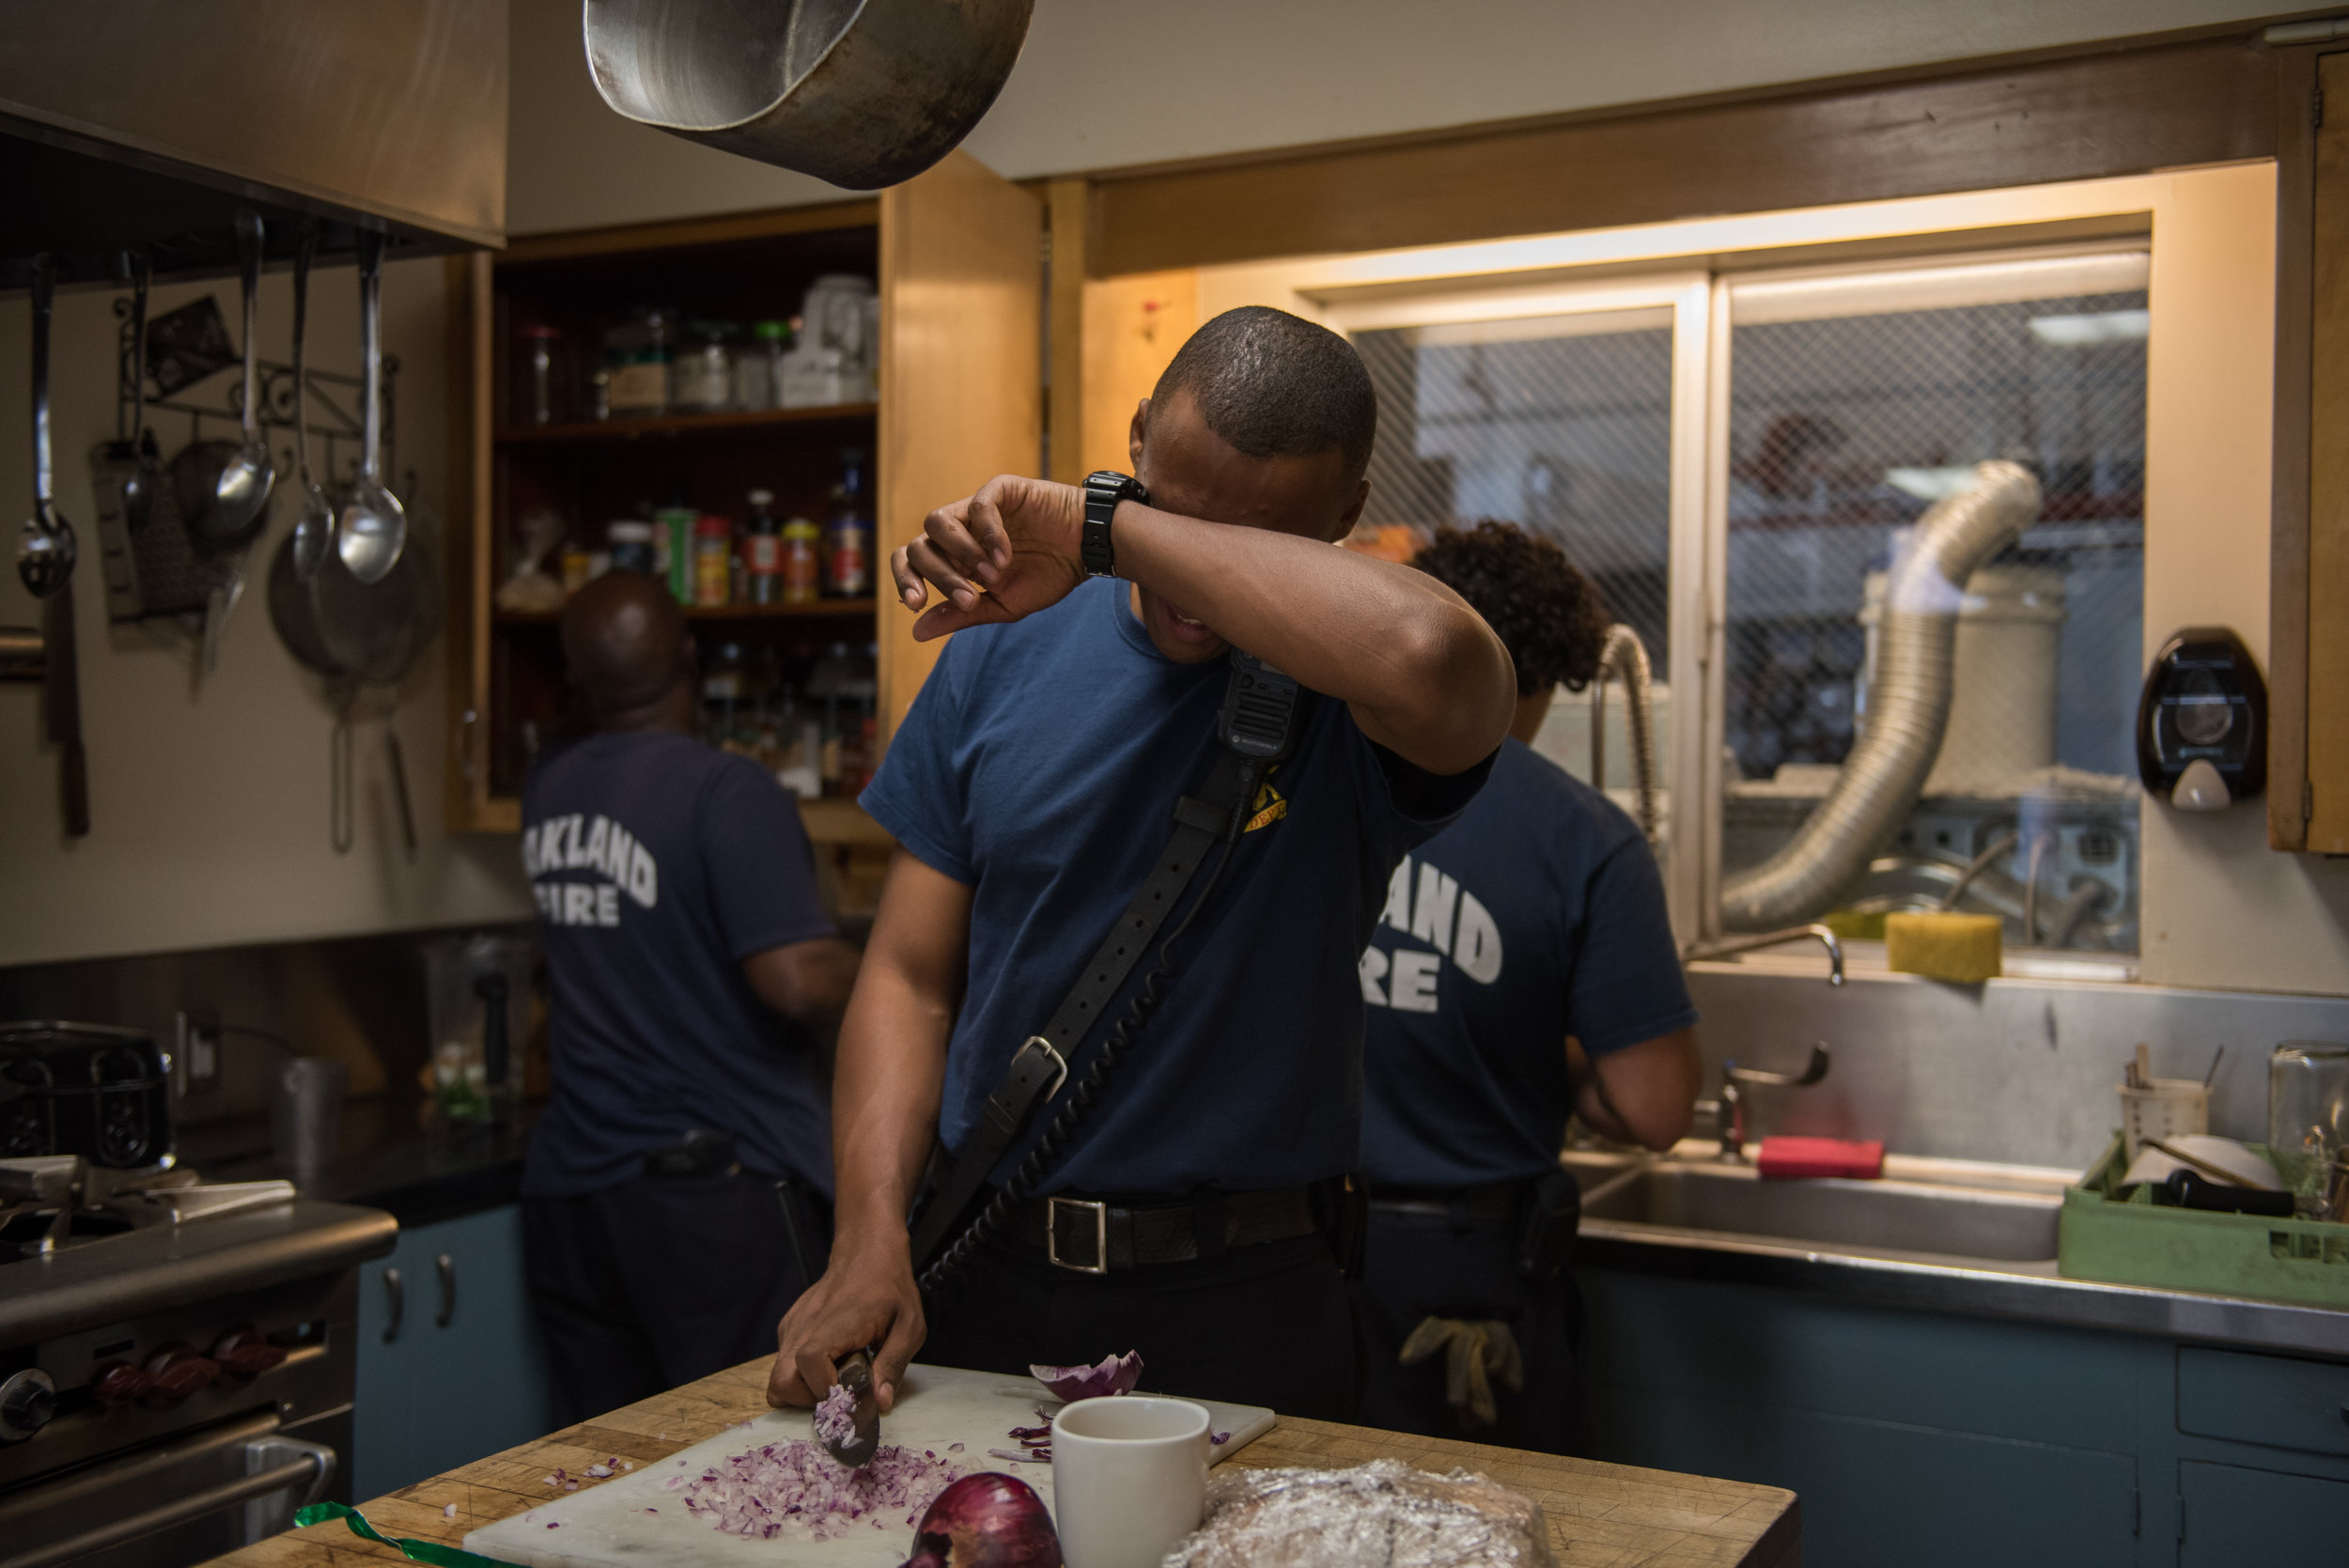 Firefighter Paul Mason Jr wipes his eyes as he chops onions for the crew's dinner at Oakland's Station 23 on Monday, June 26, 2017. | Rosa Furneaux for the East Bay Express